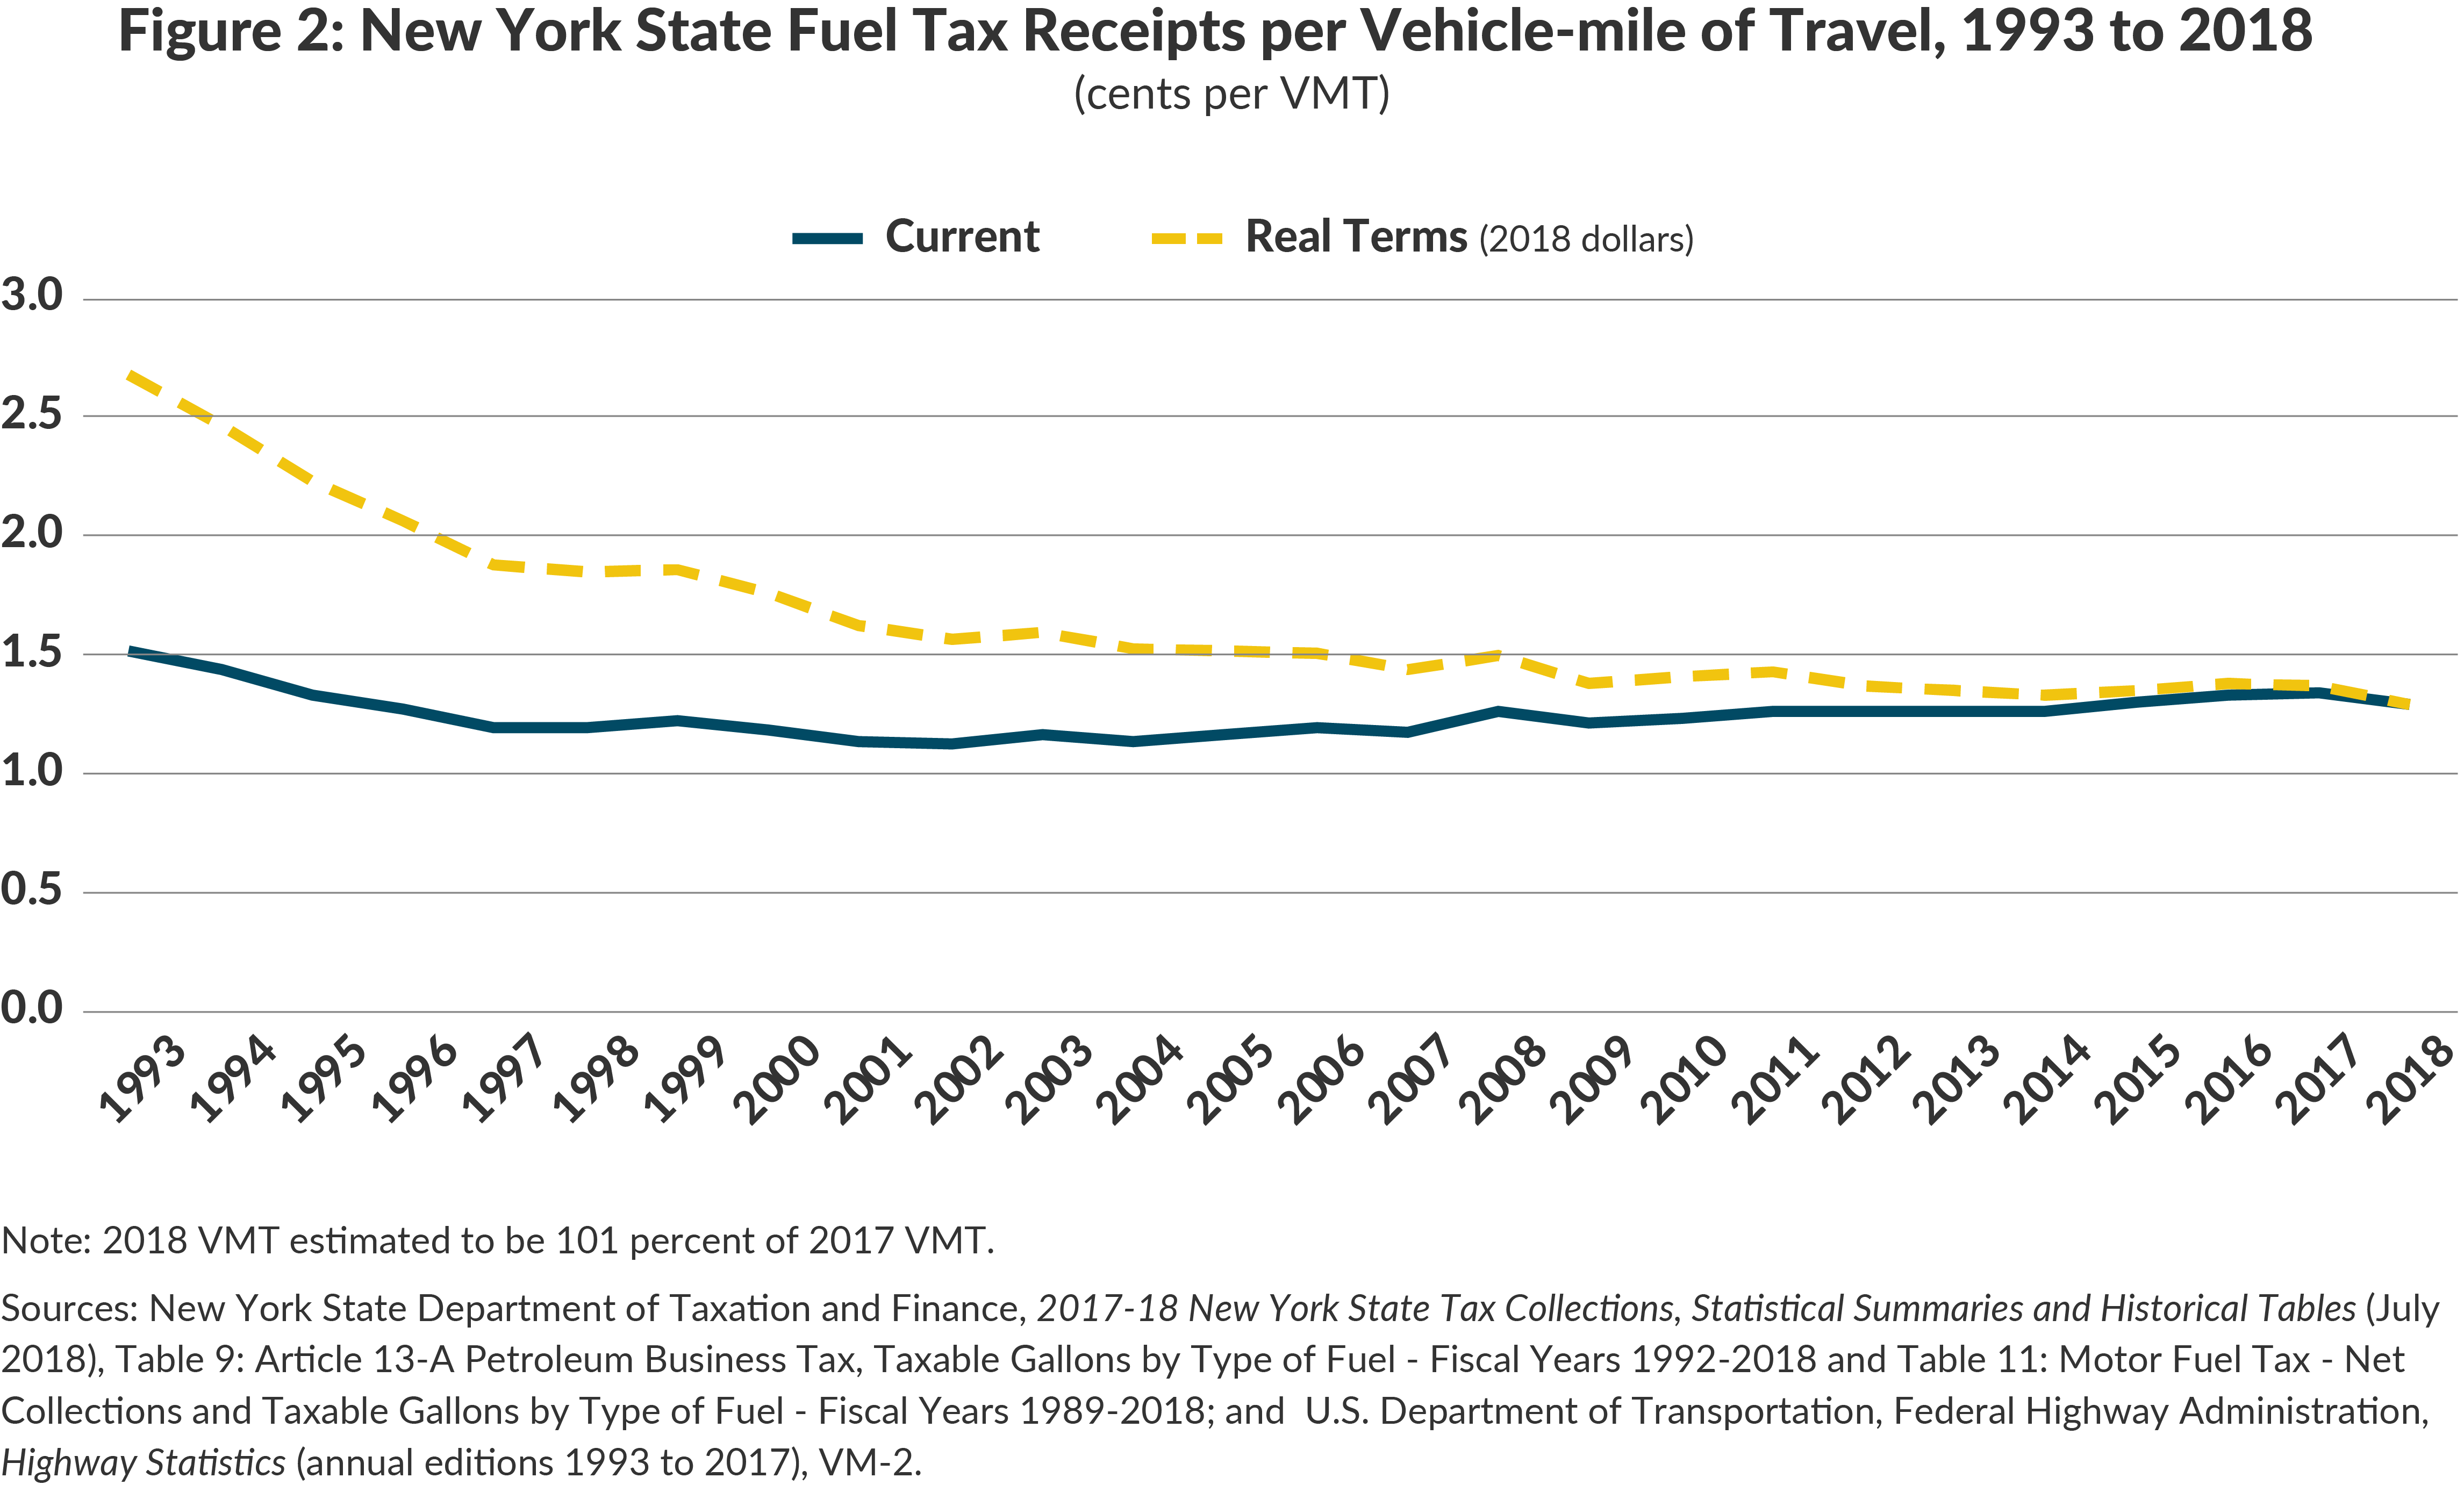 Figure 2: New York State Fuel Tax Receipts per Vehicle-mile of Travel, 1992 to 2018